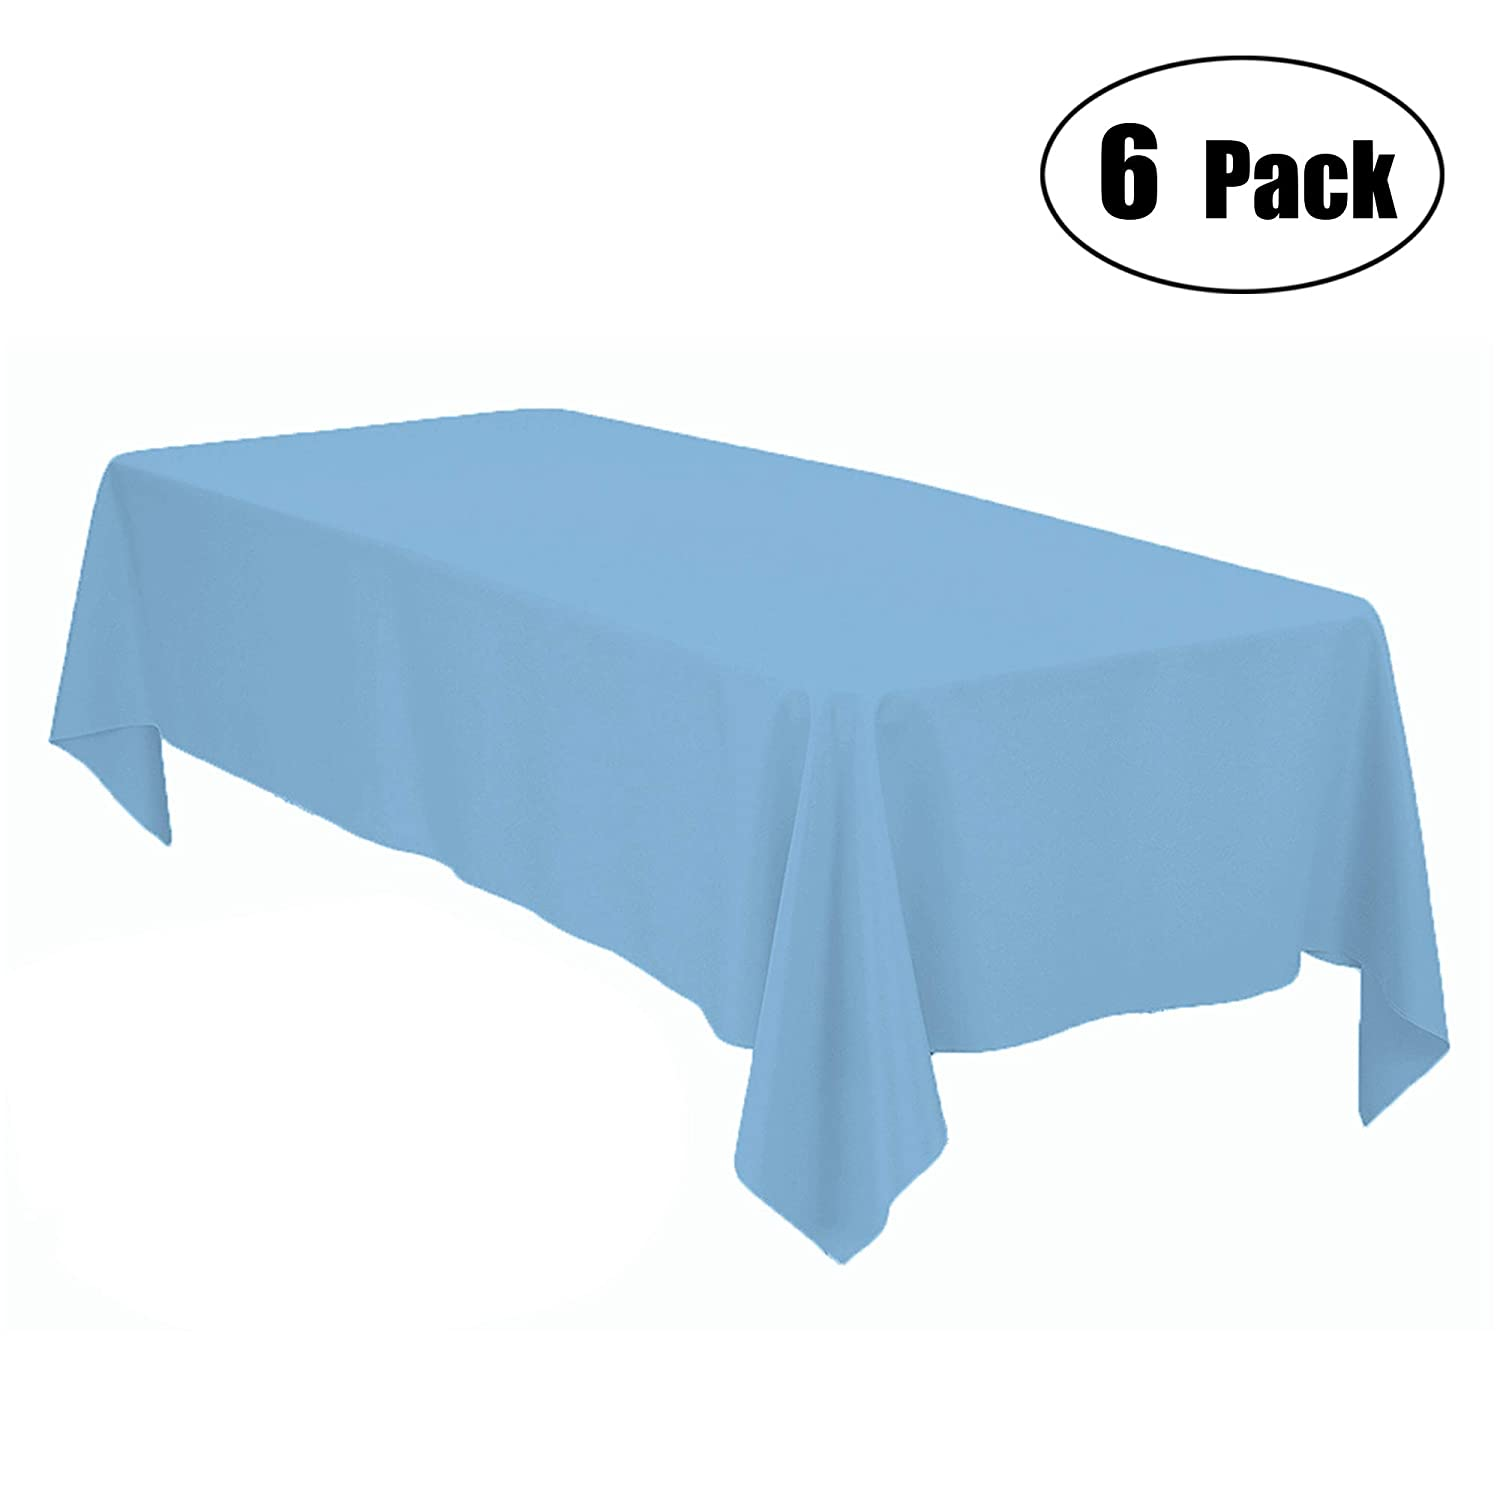 Minel Disposable Party Table Cloths Rectangular 3 Pack Turquoise